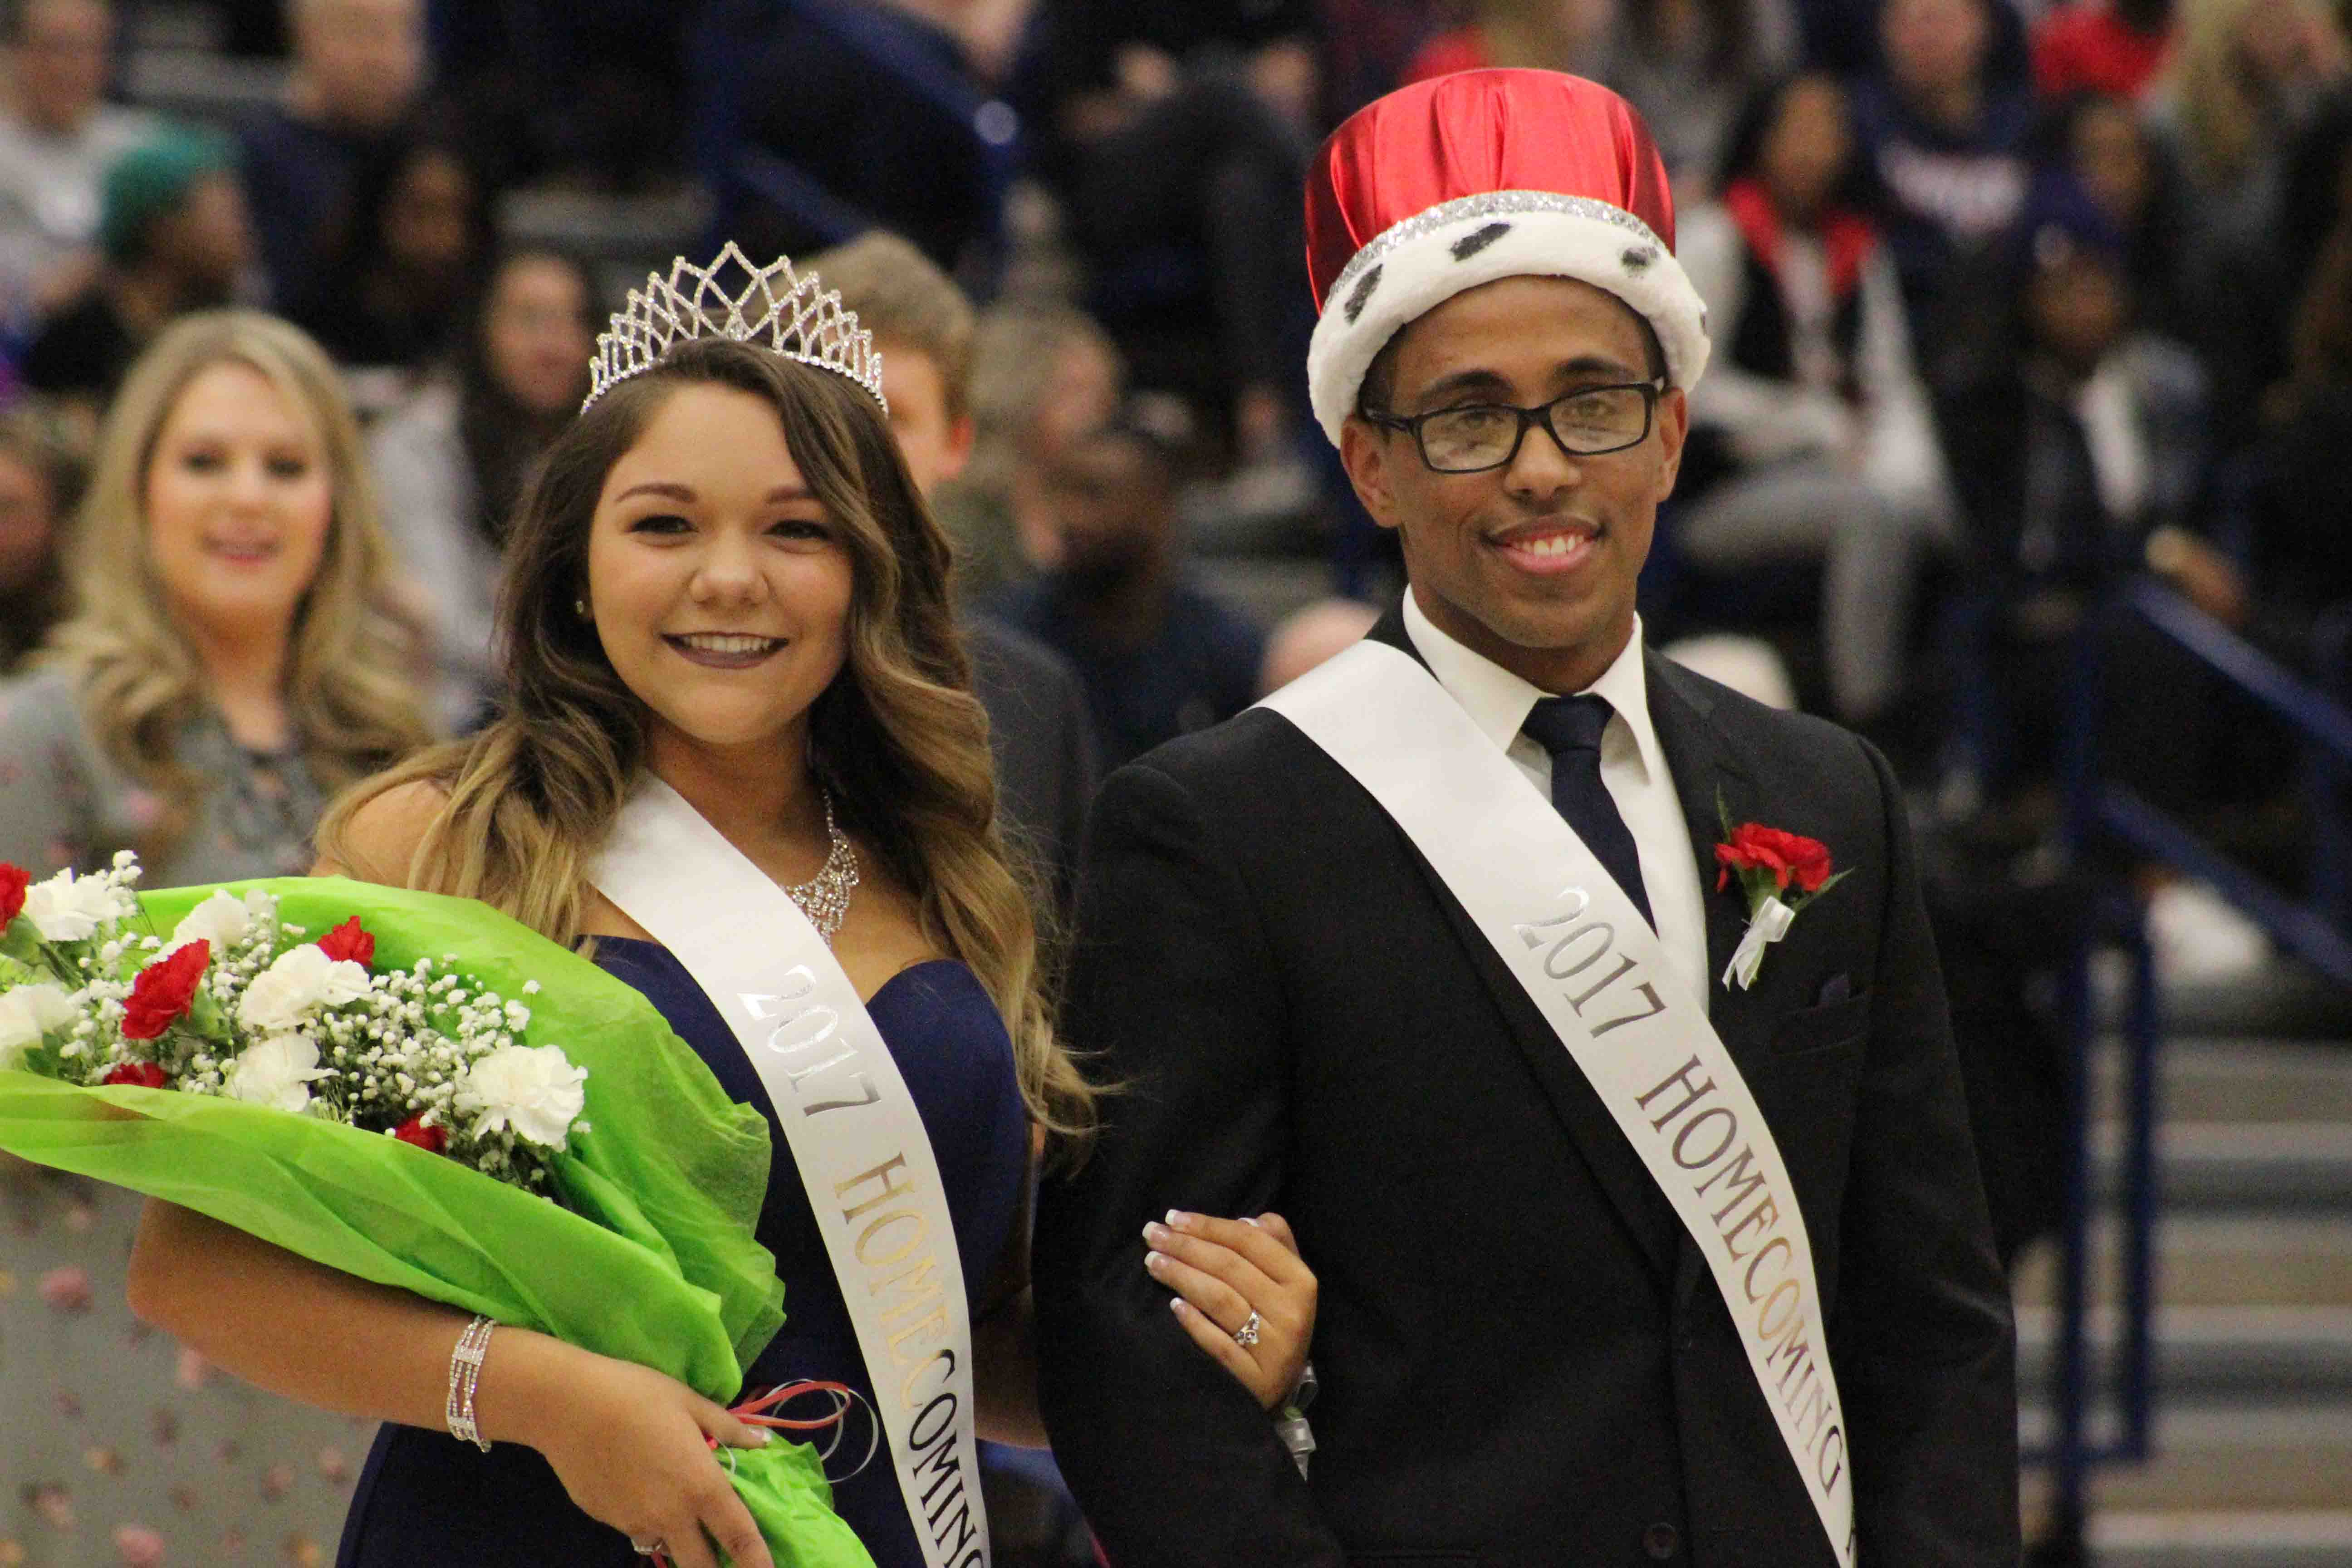 Virgilio Paulino a junior political science and philosophy major with a pre-law minor stands with Angela DaCosta, a junior biology (pre-medicine) major after they won Homecoming King and Queen Saturday afternoon in the PAC.